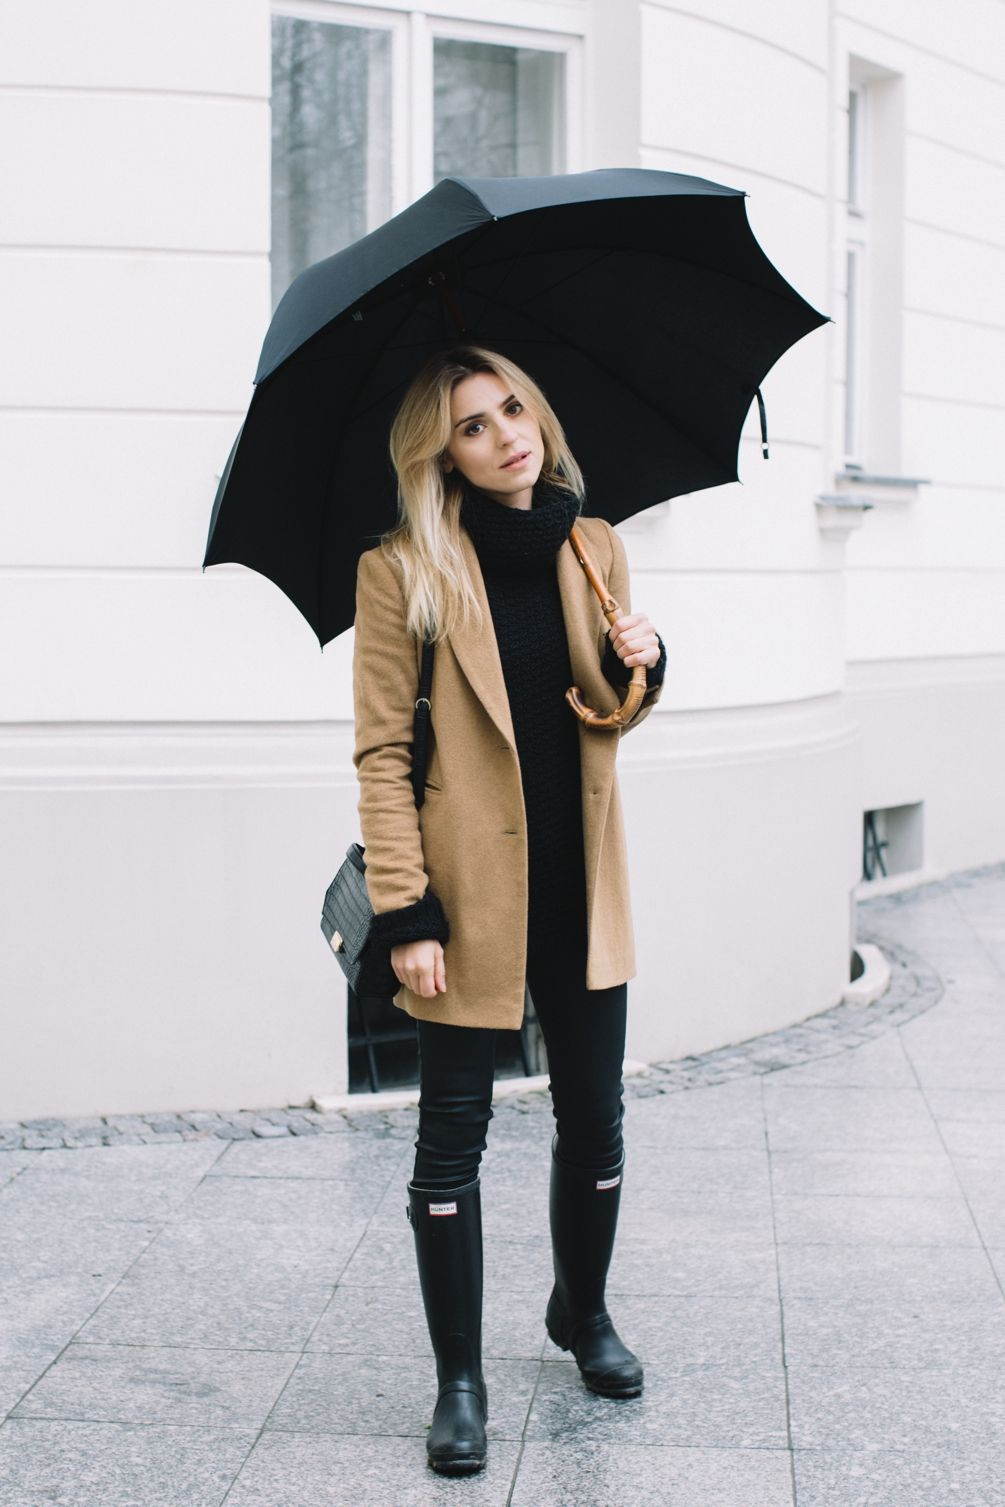 Come vestirsi se piove? Outfit e accessori must have